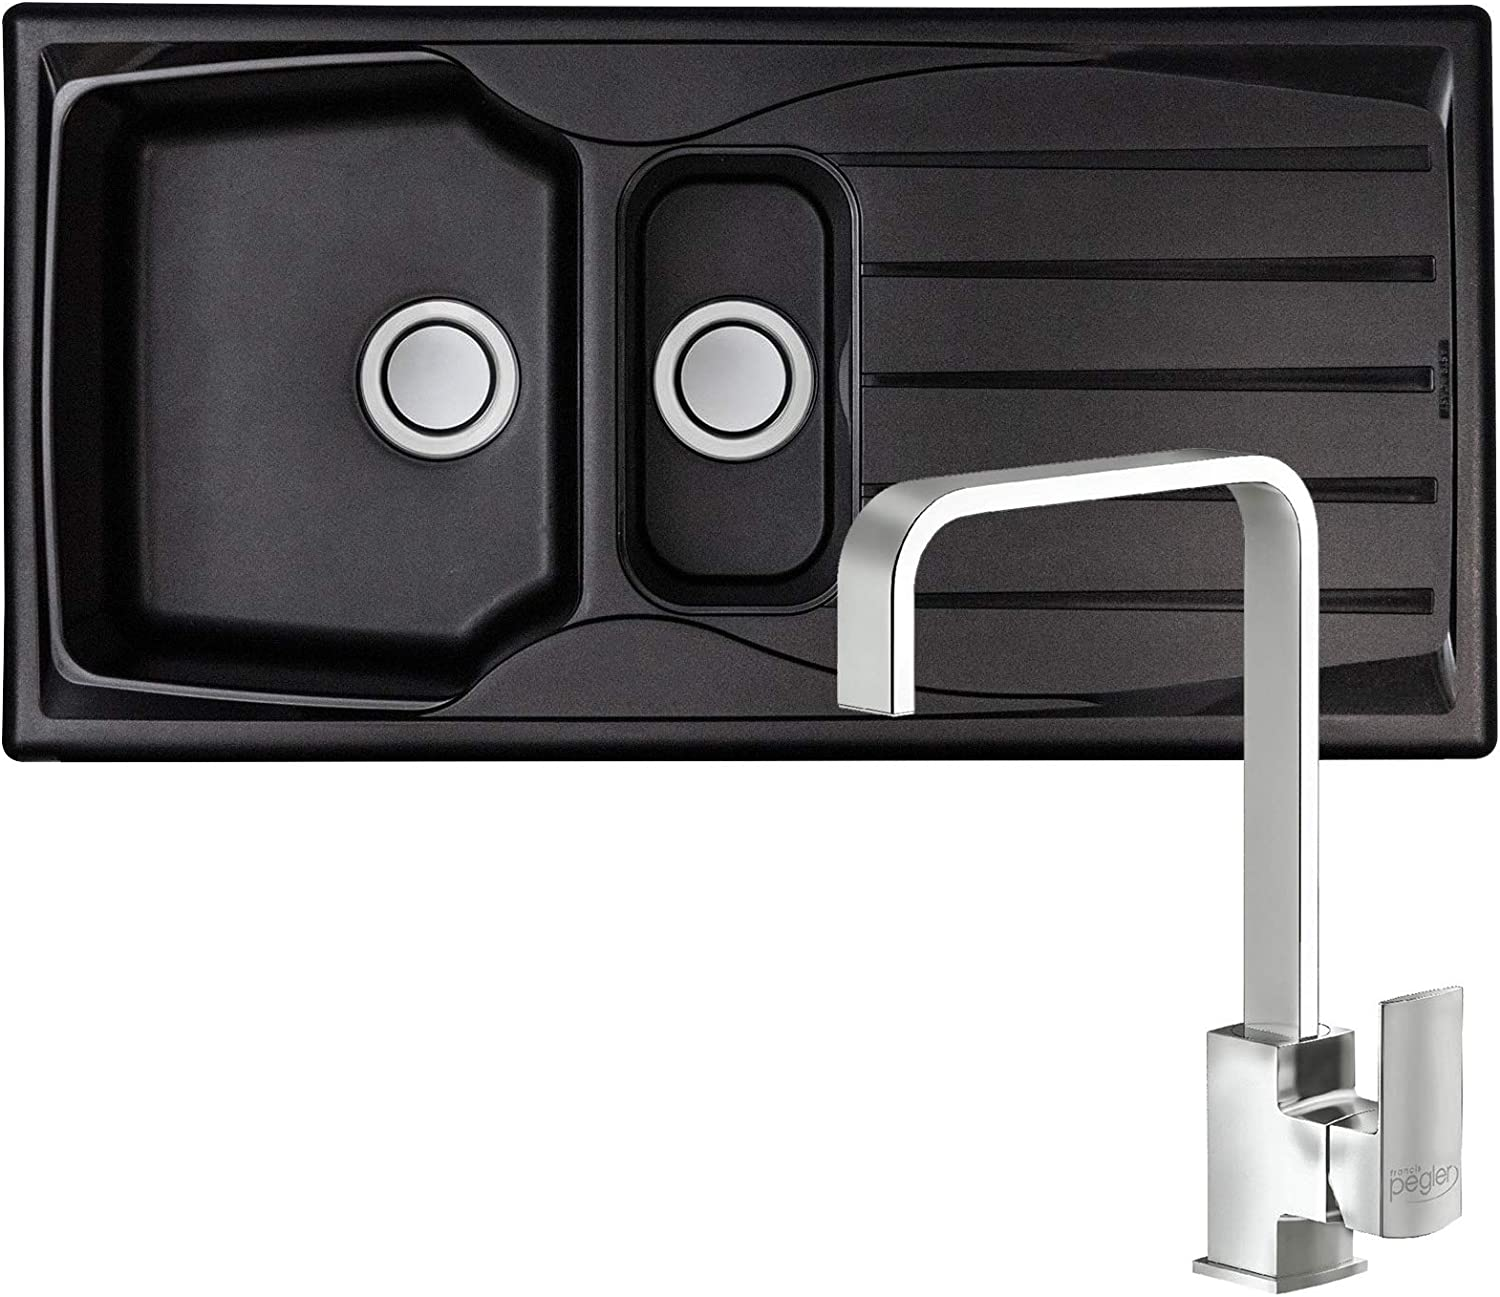 Astracast Sierra 1.5 Bowl Black Kitchen Sink & Reginox Astoria Chrome Mixer Tap